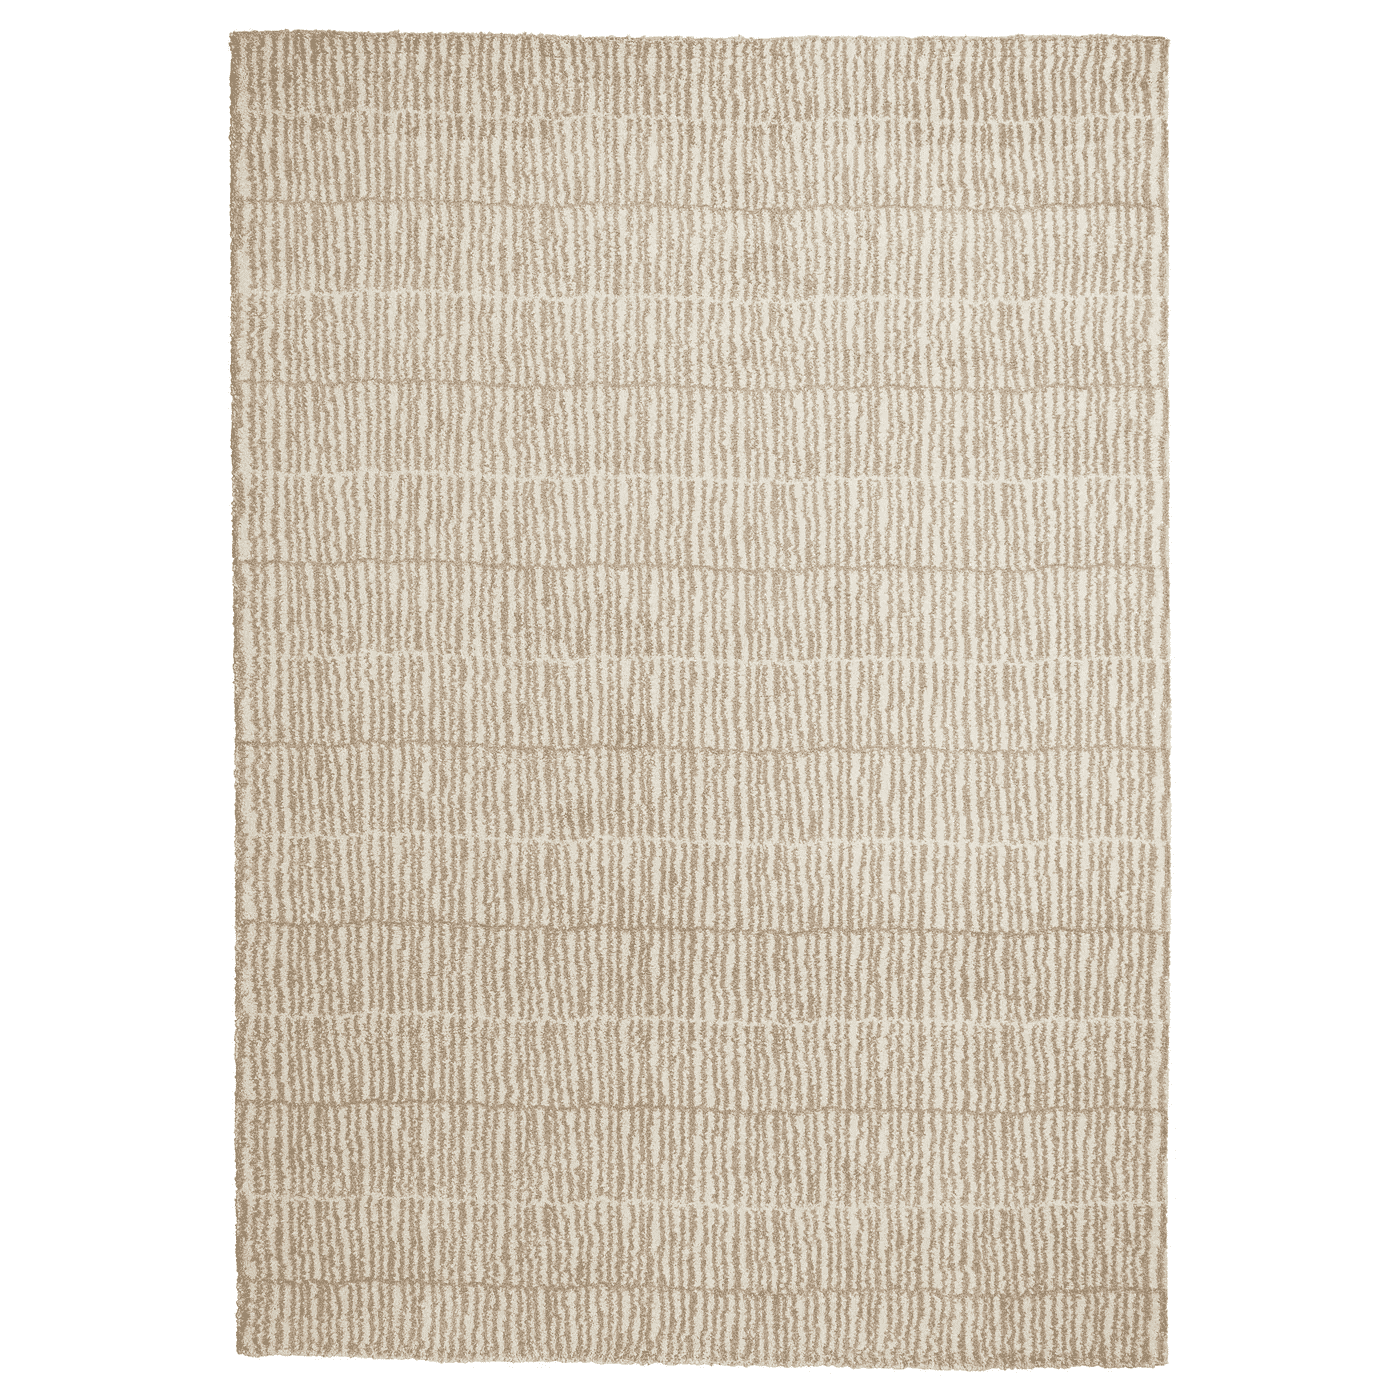 LINDELSE Rug, high pile, natural, beige